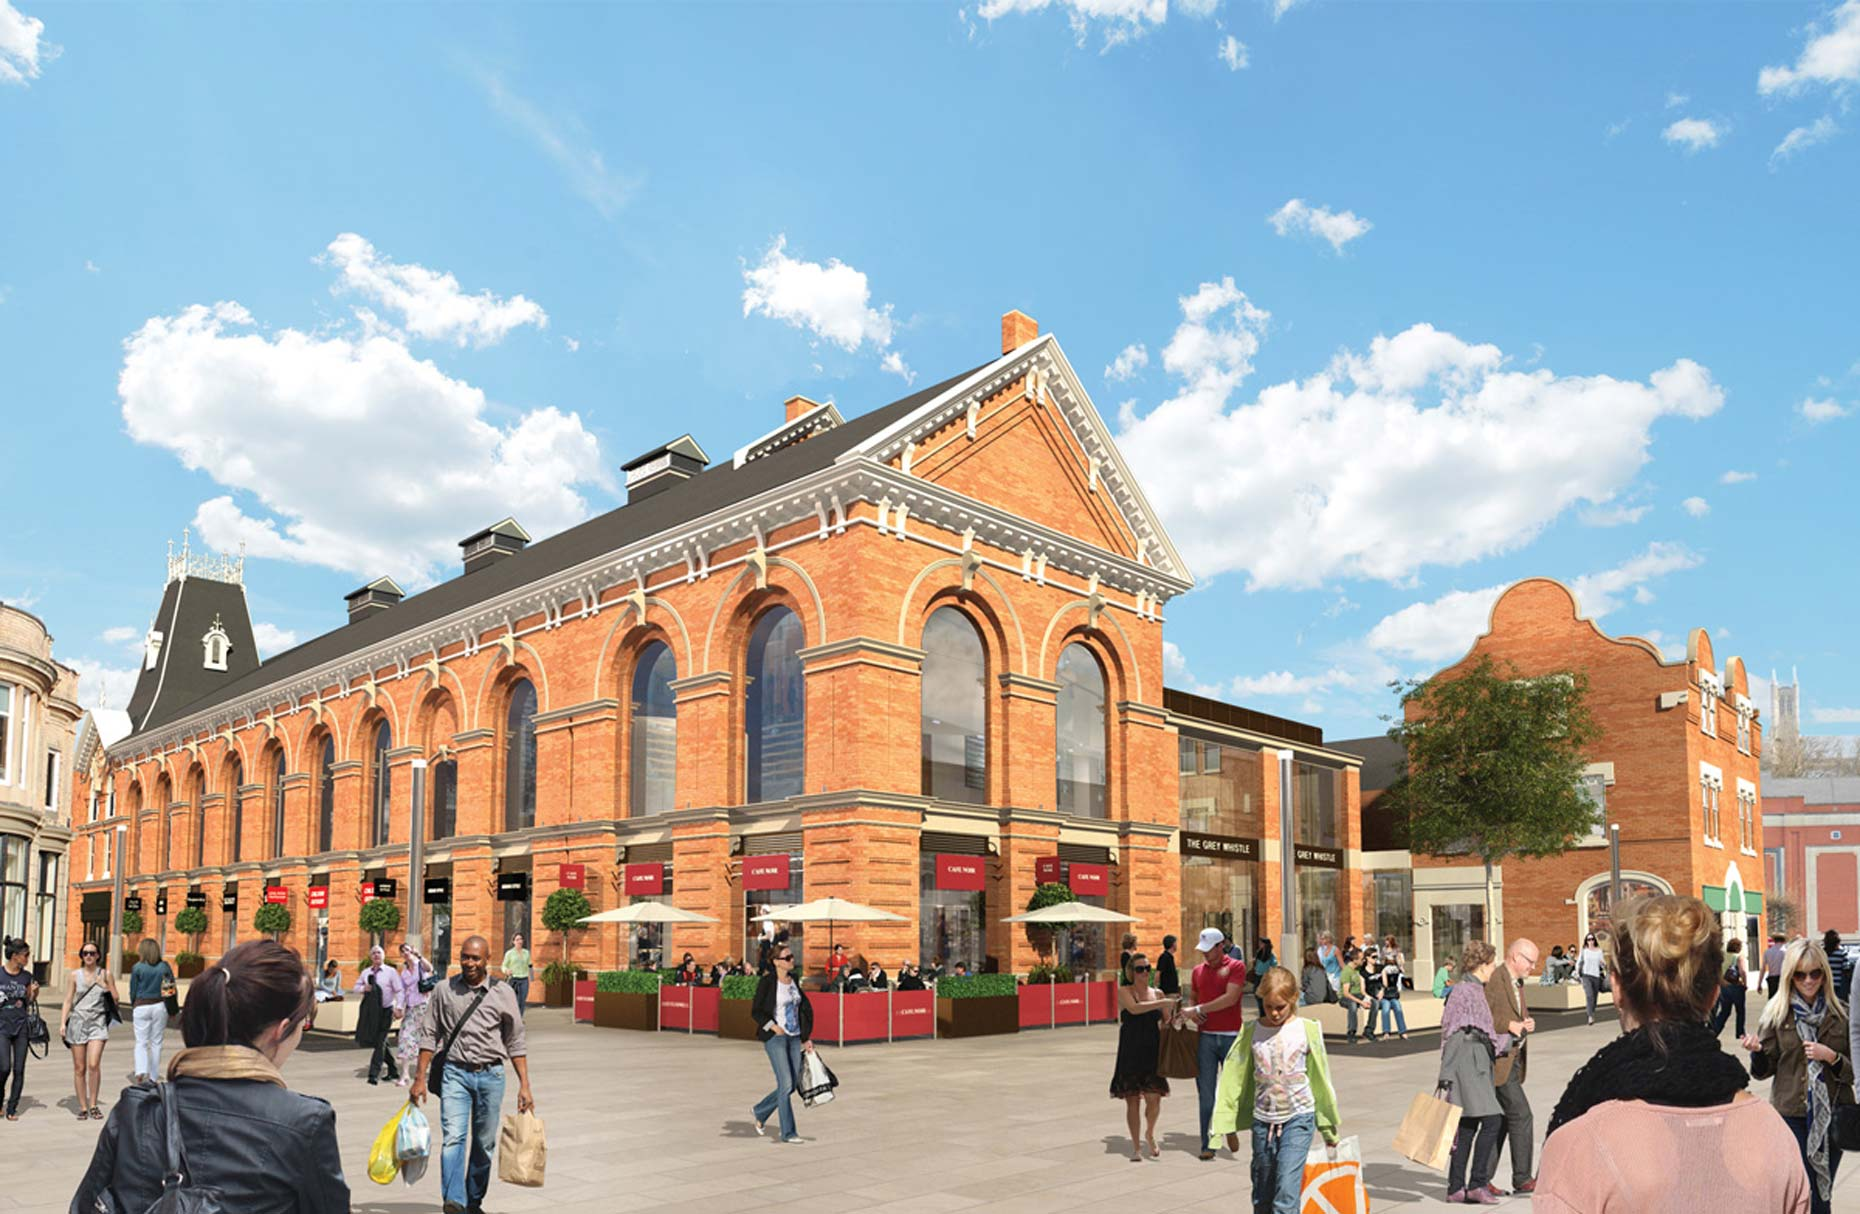 Lincolnshire Co-operative plans to remove modern extensions to the Corn Exchange and revamp the old facade.